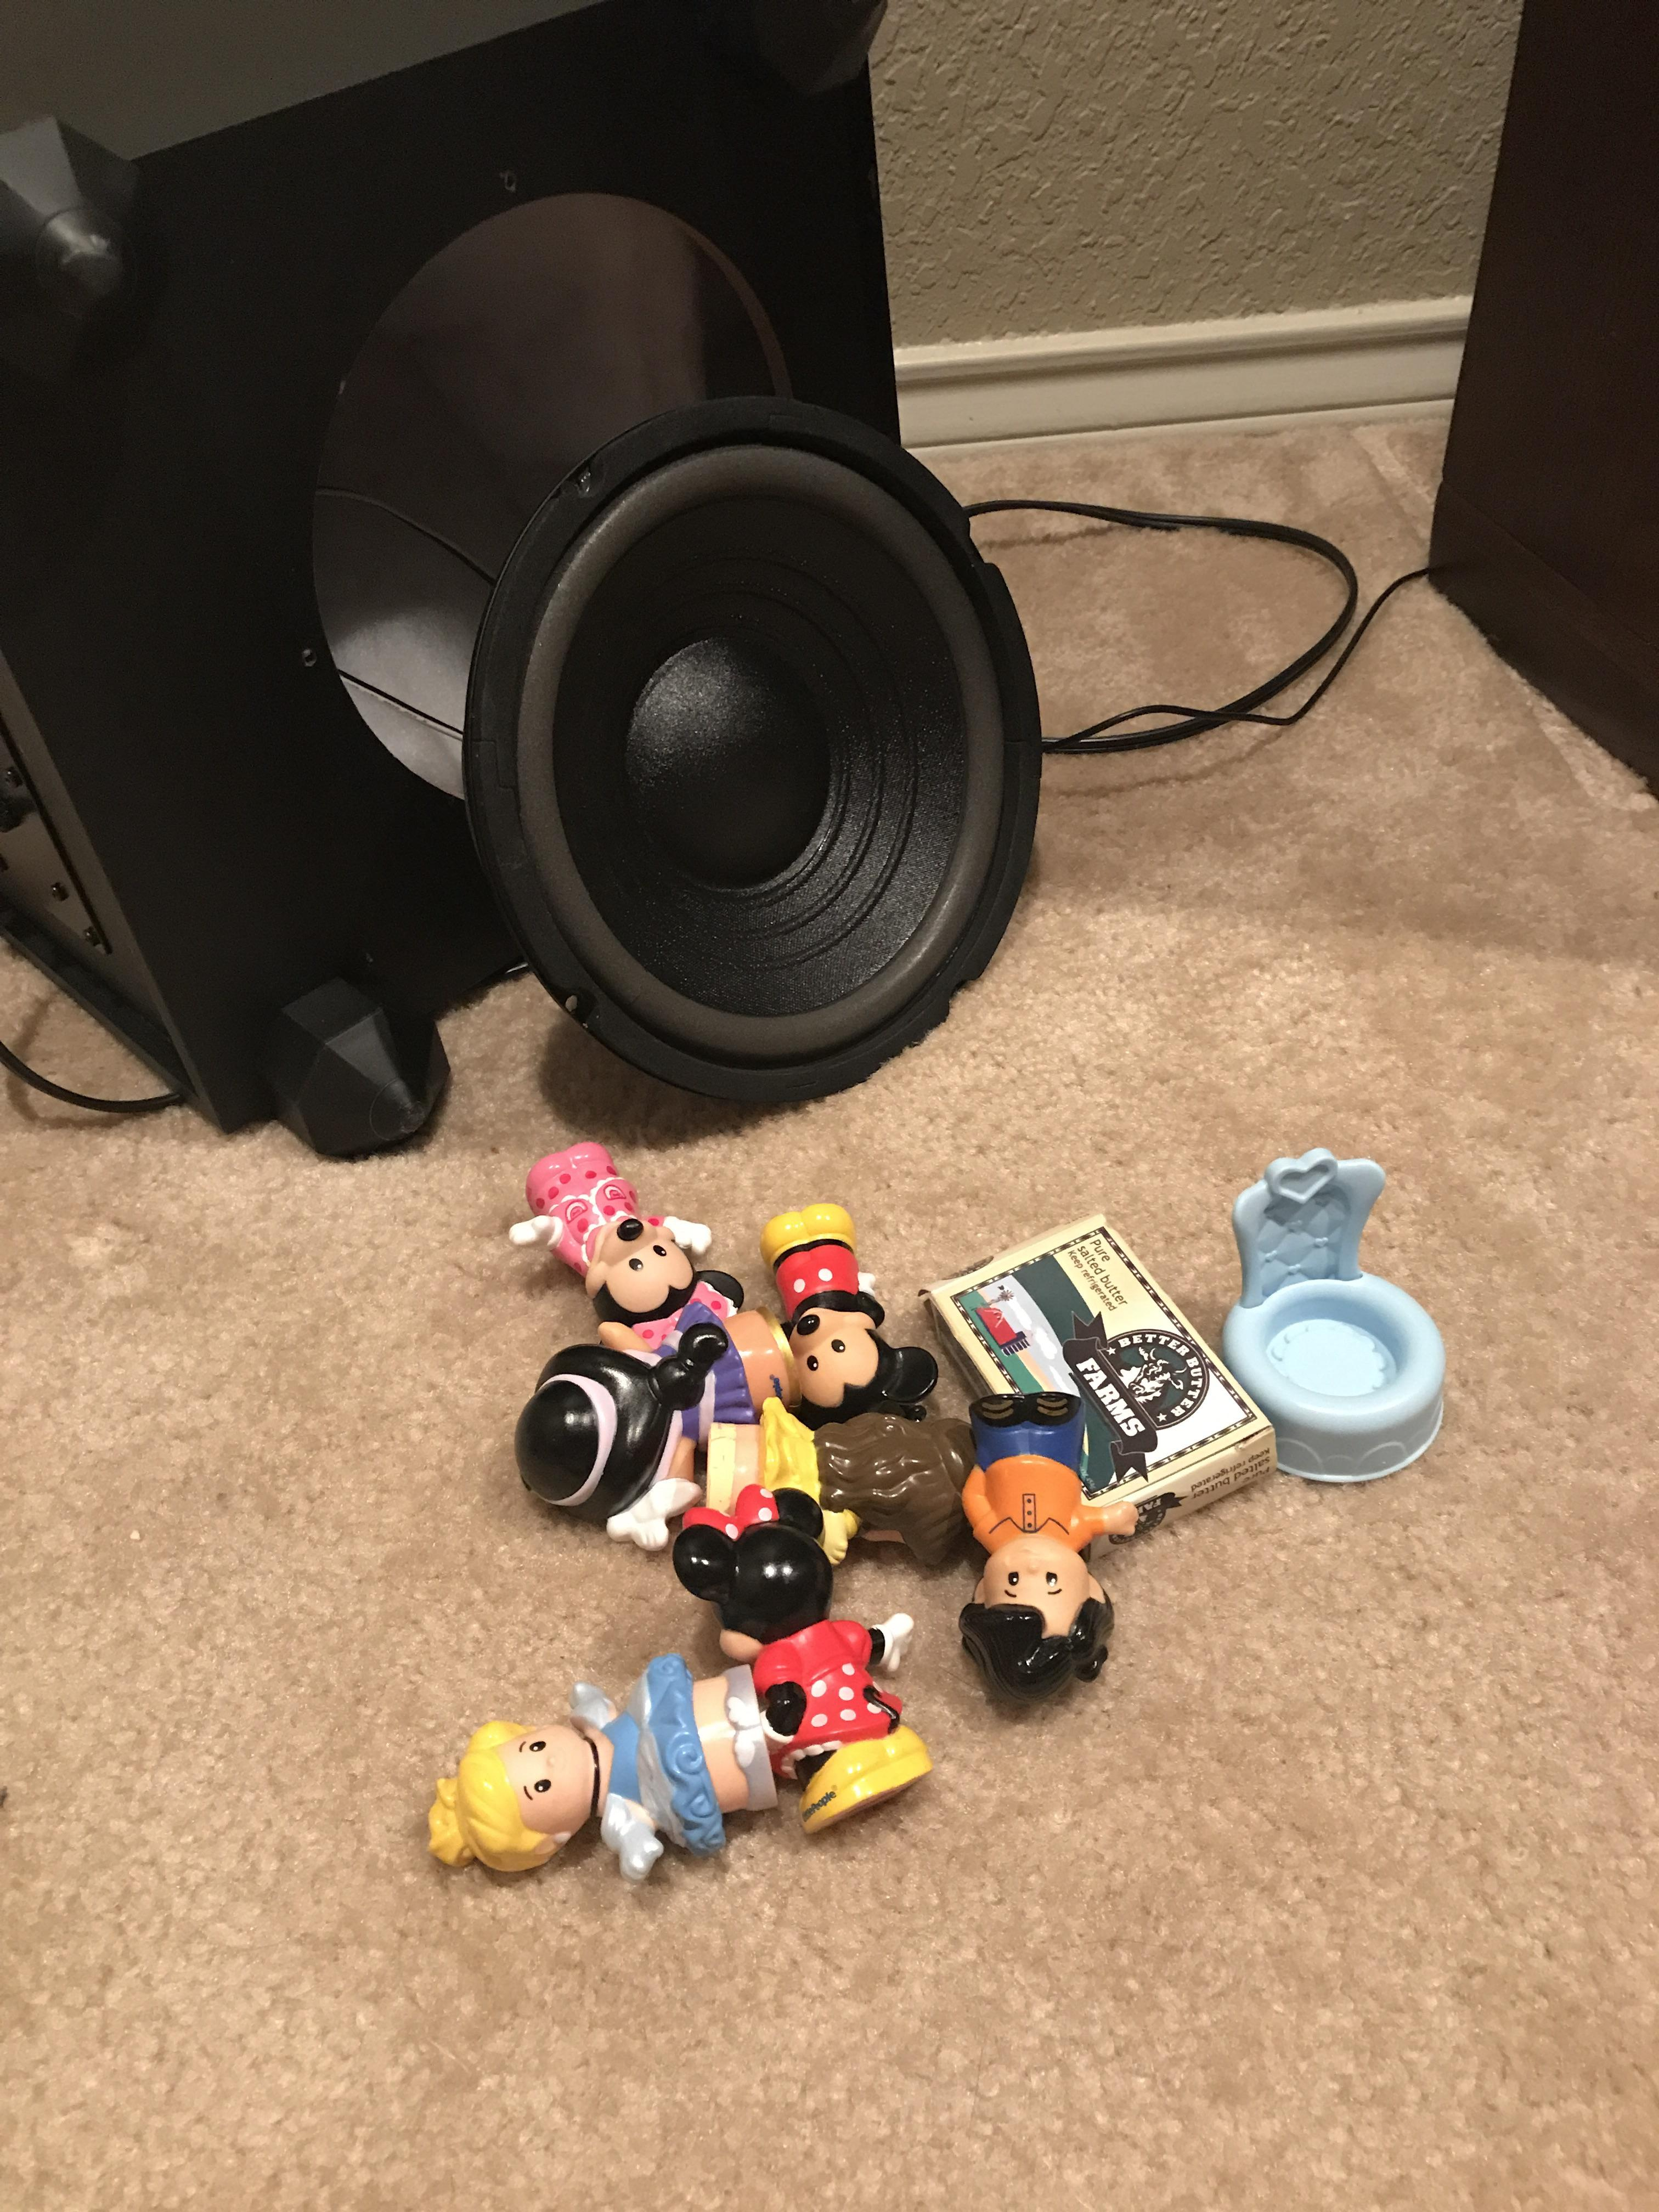 Subwoofer Buzzing : subwoofer, buzzing, Wondering, Subwoofer, Buzzing, Until, Pulled, These, Audio